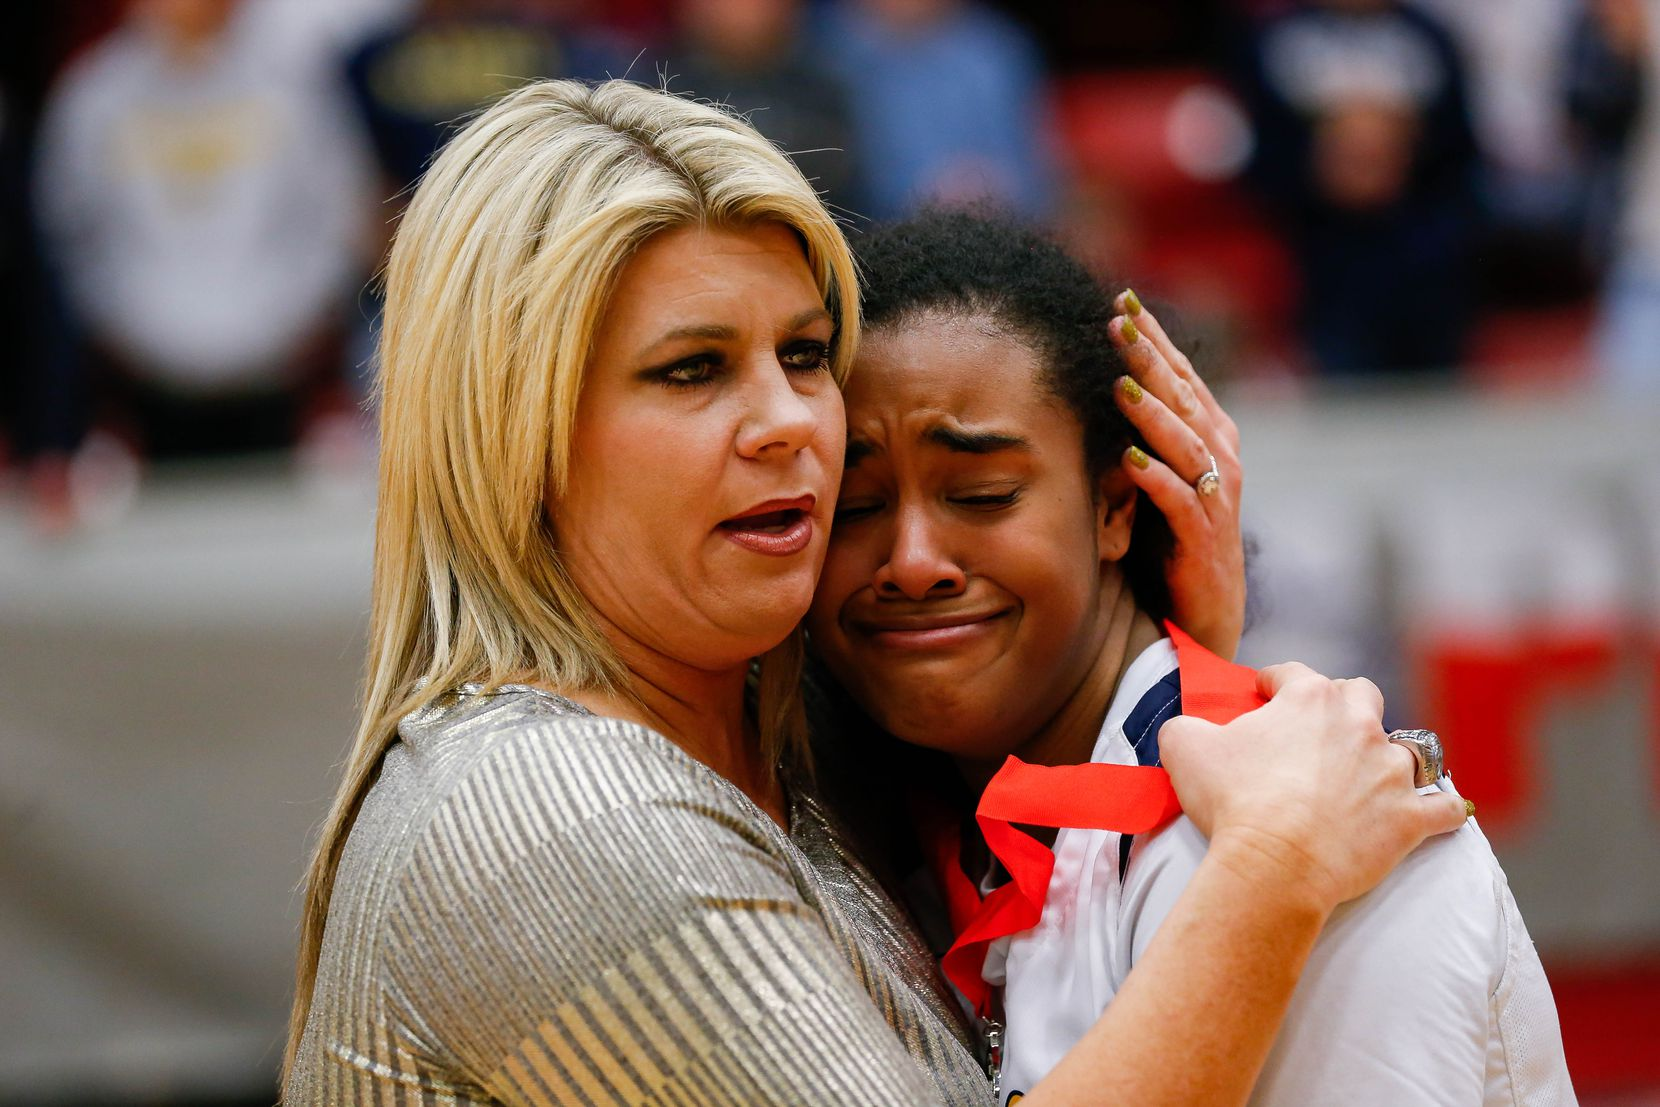 Plano Prestonwood Christian's Bria Stephens (24) hugs coach Holly Mulligan after losing a TAPPS Class 6A girls basketball state championship game against the Village School on Feb. 28, 2020 in West. Prestonwood lost 75-48.